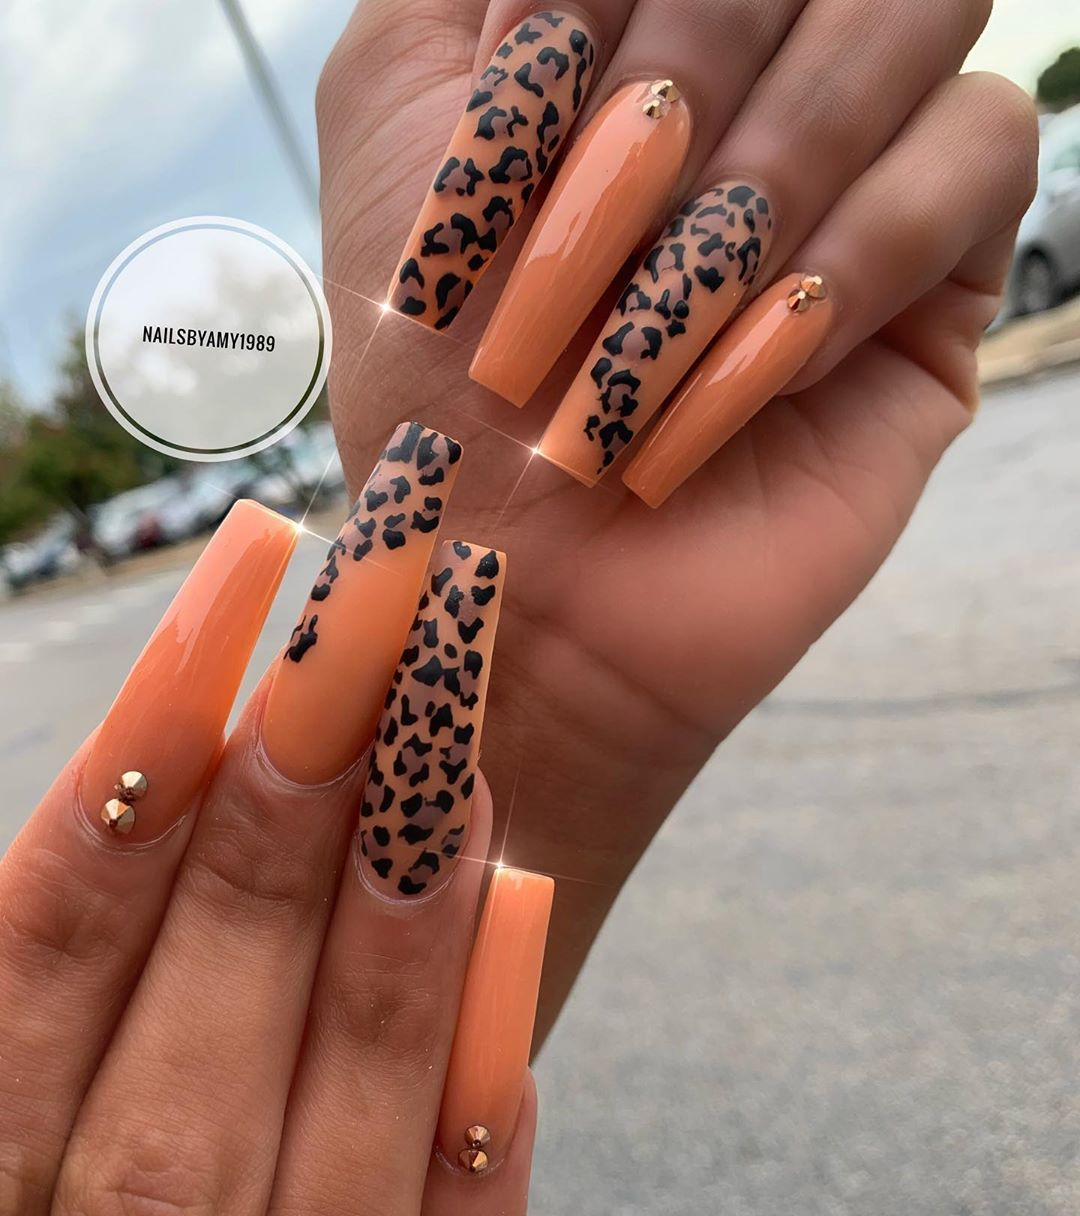 Cheetah Print Nailart Jellynails Nailsofinstagram Nails Nailpro Nailmagazi Women Trends In 2020 Cheetah Print Nails Swag Nails Coffin Nails Designs